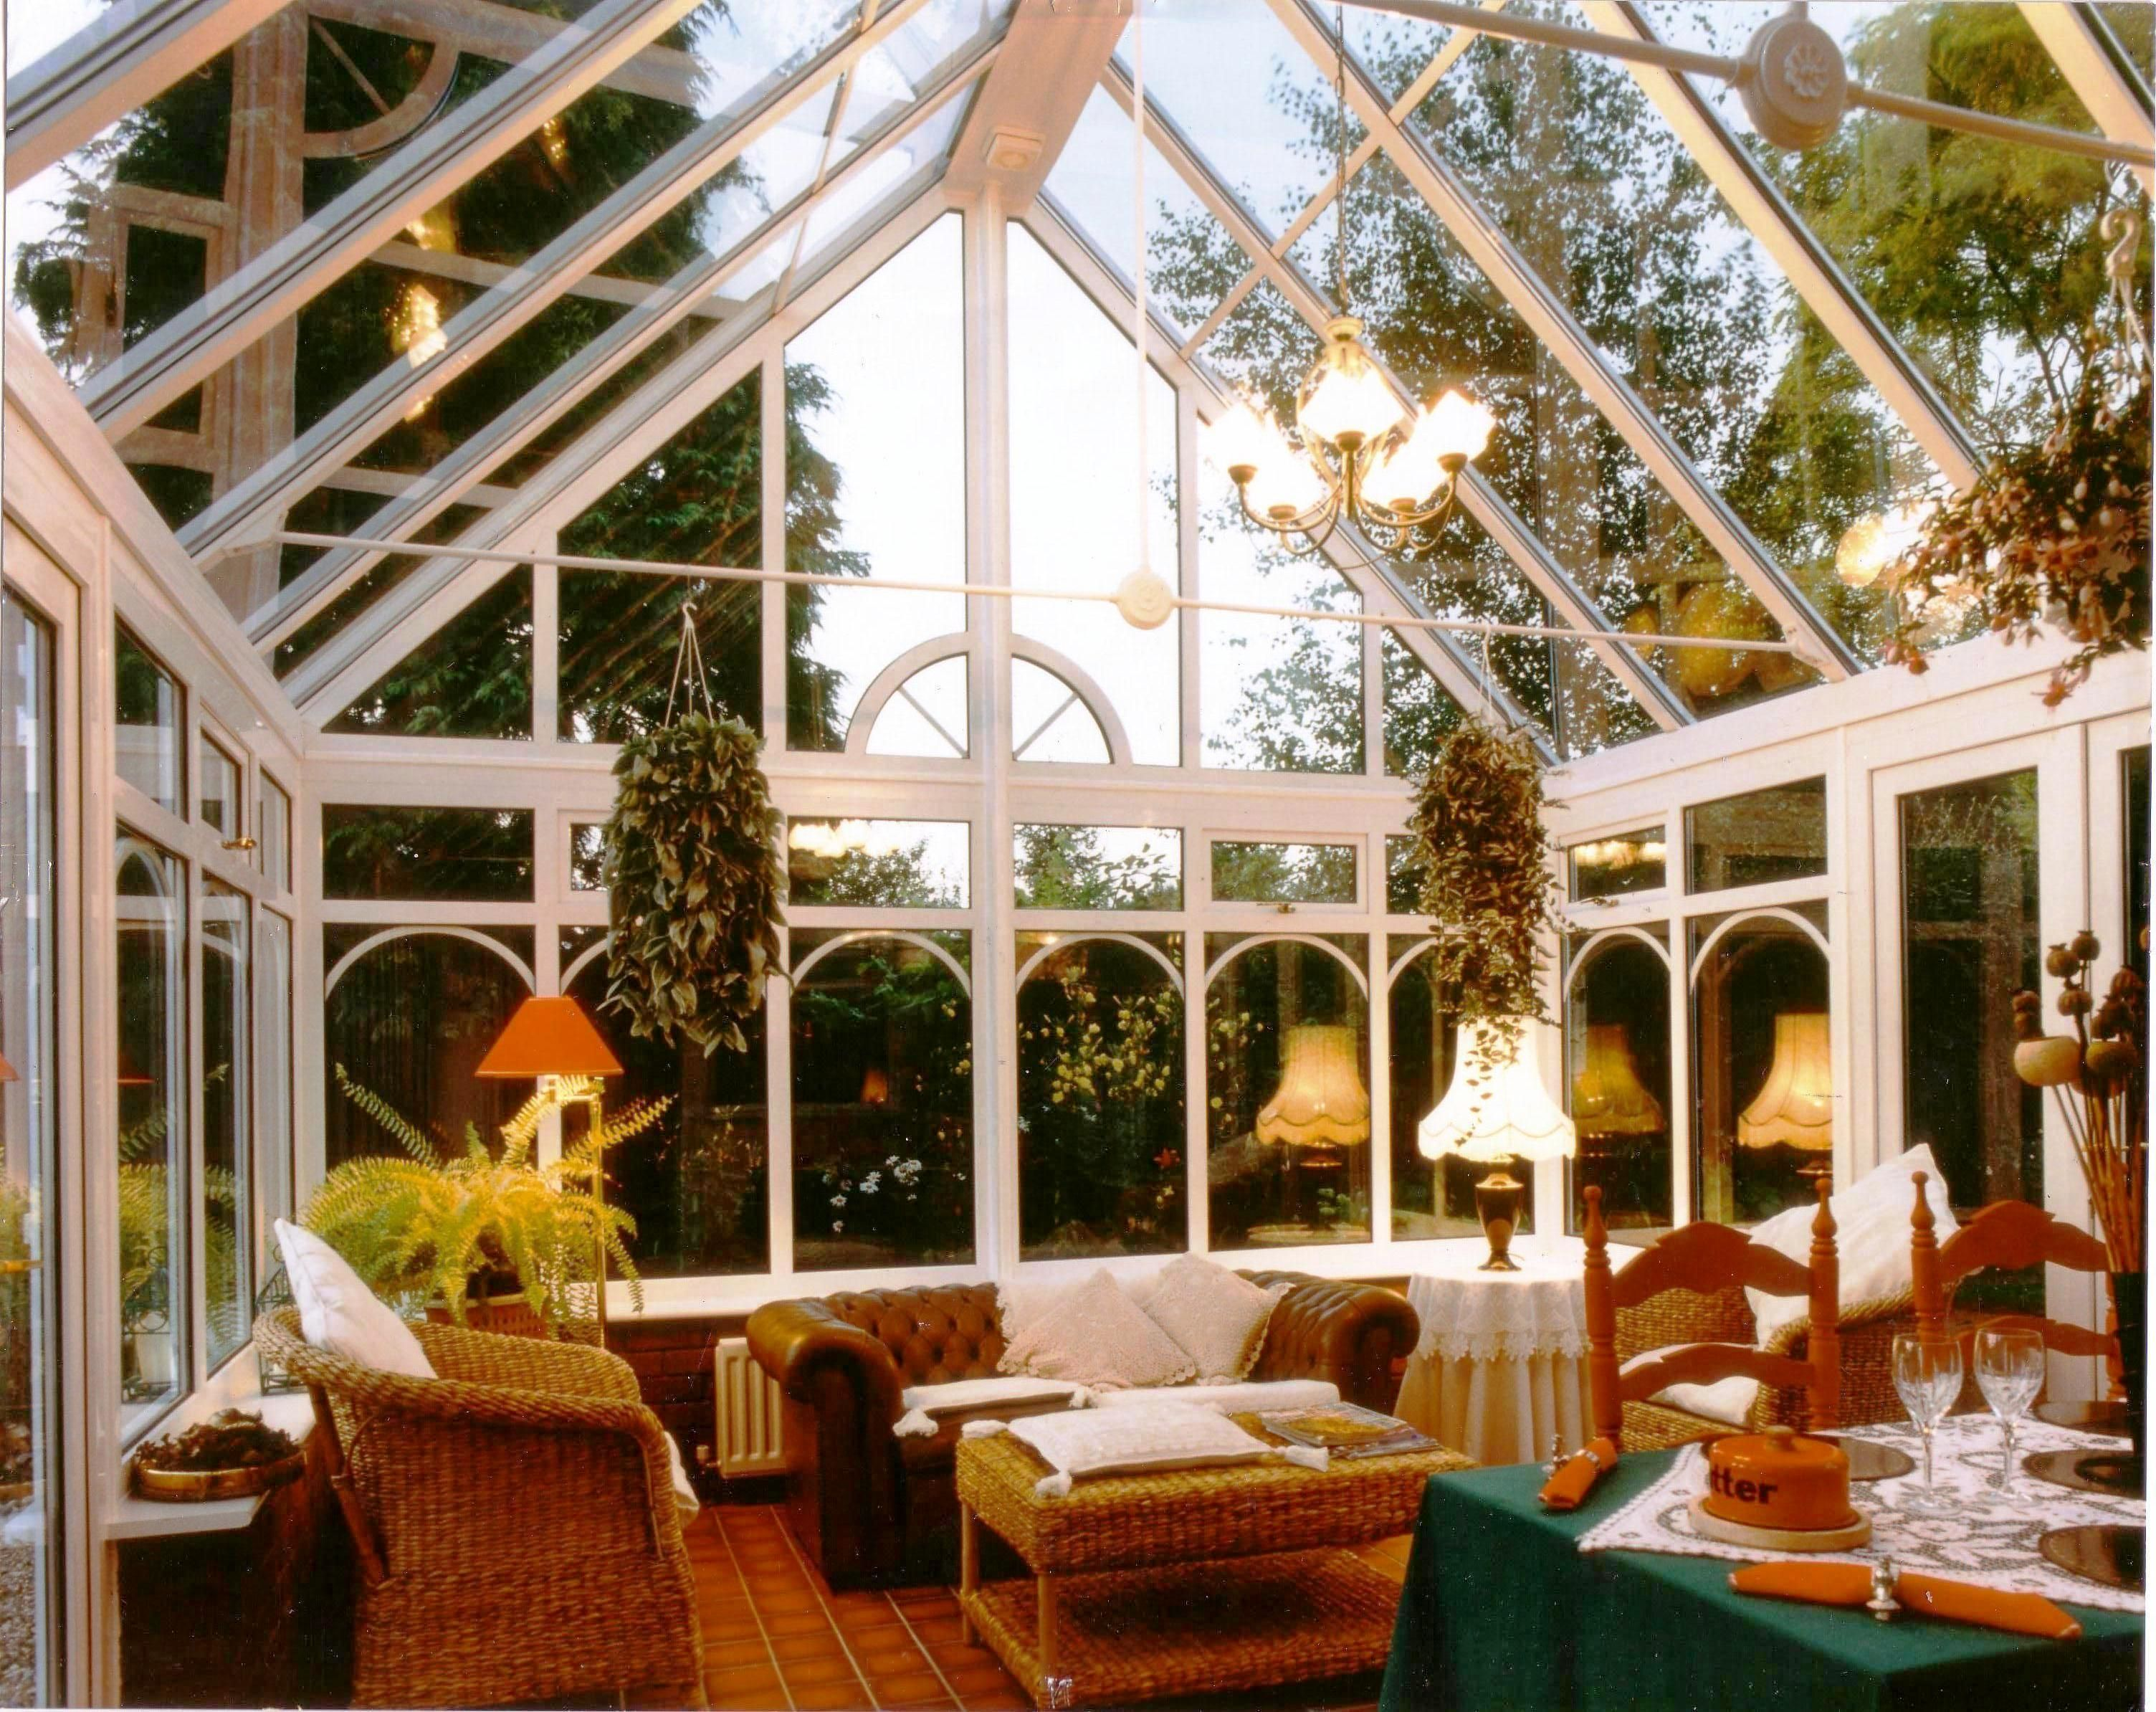 High ceiling light and airy gable ended conservatory image source high ceiling light and airy gable ended conservatory image source vivaldi conservatories mozeypictures Image collections